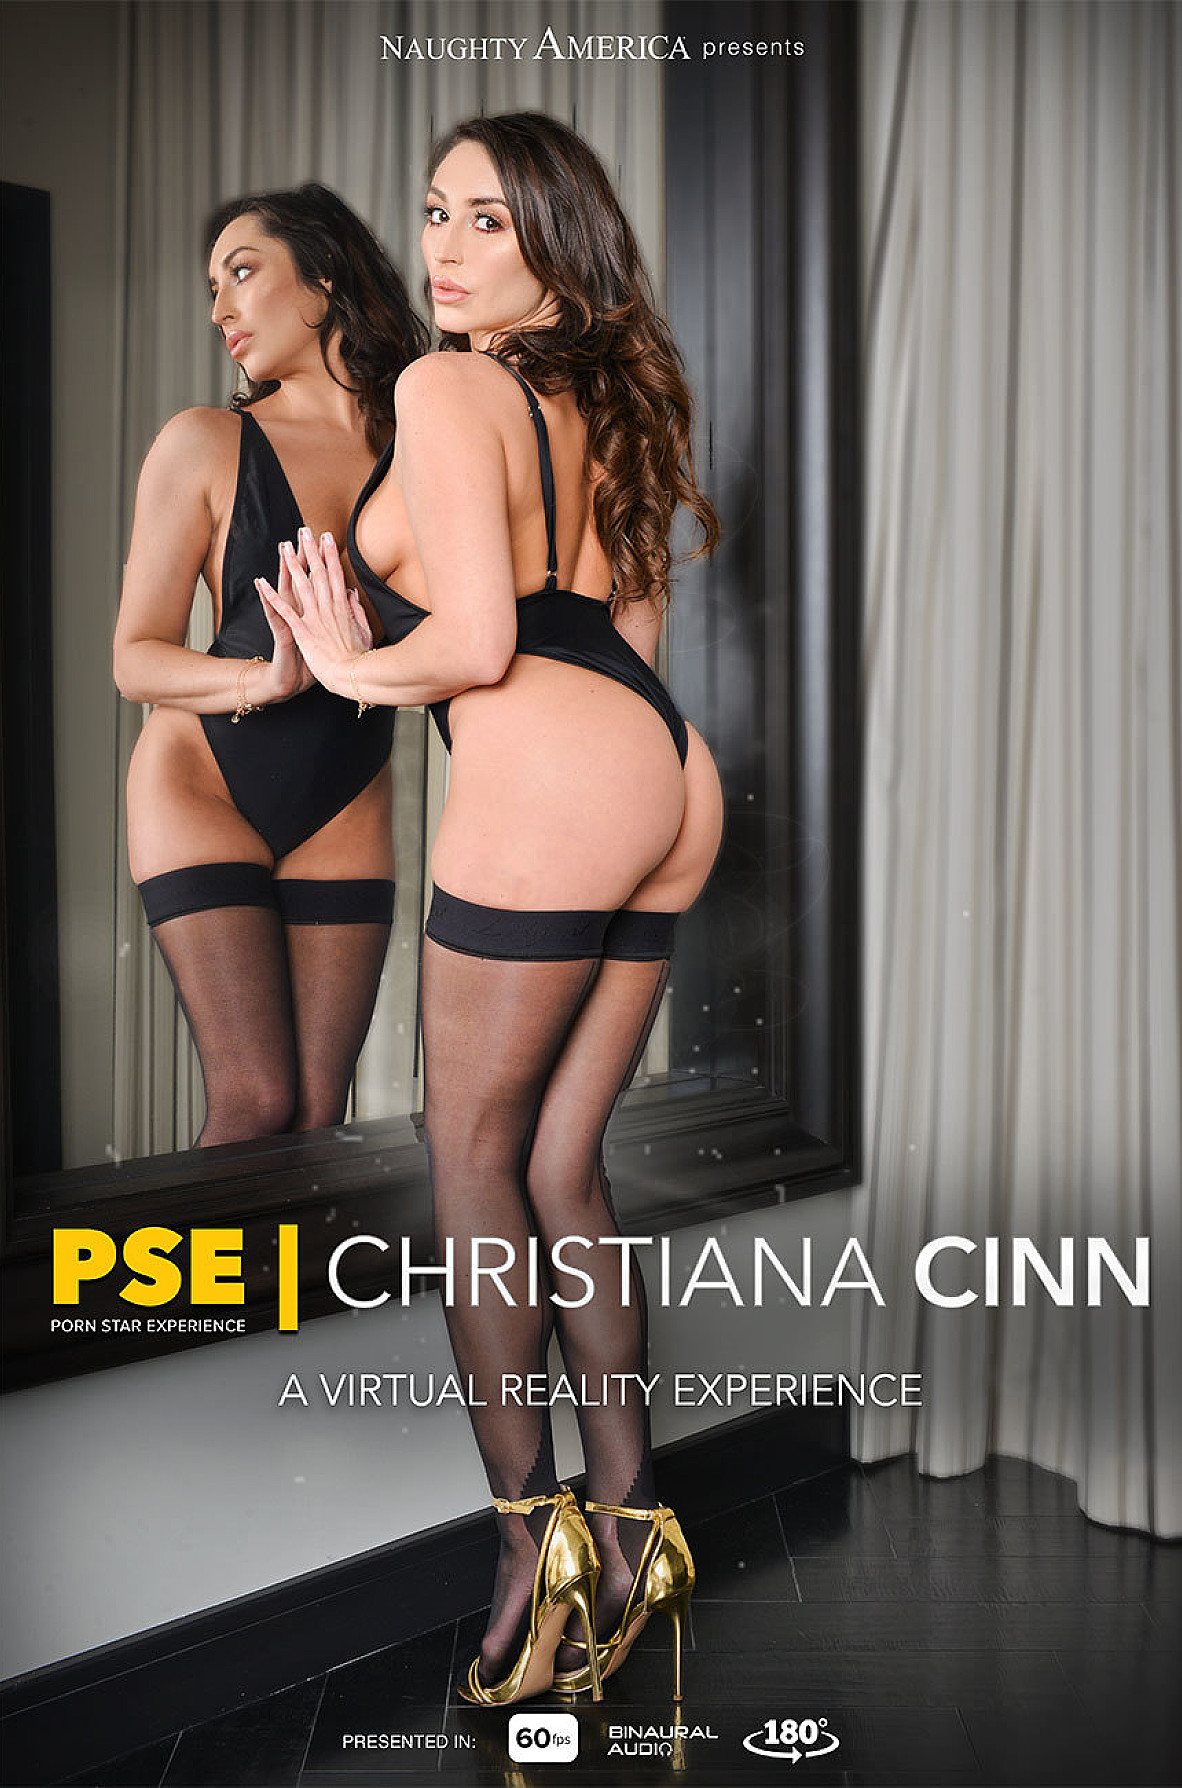 Watch Christiana Cinn and Justin Hunt VR video in Naughty America